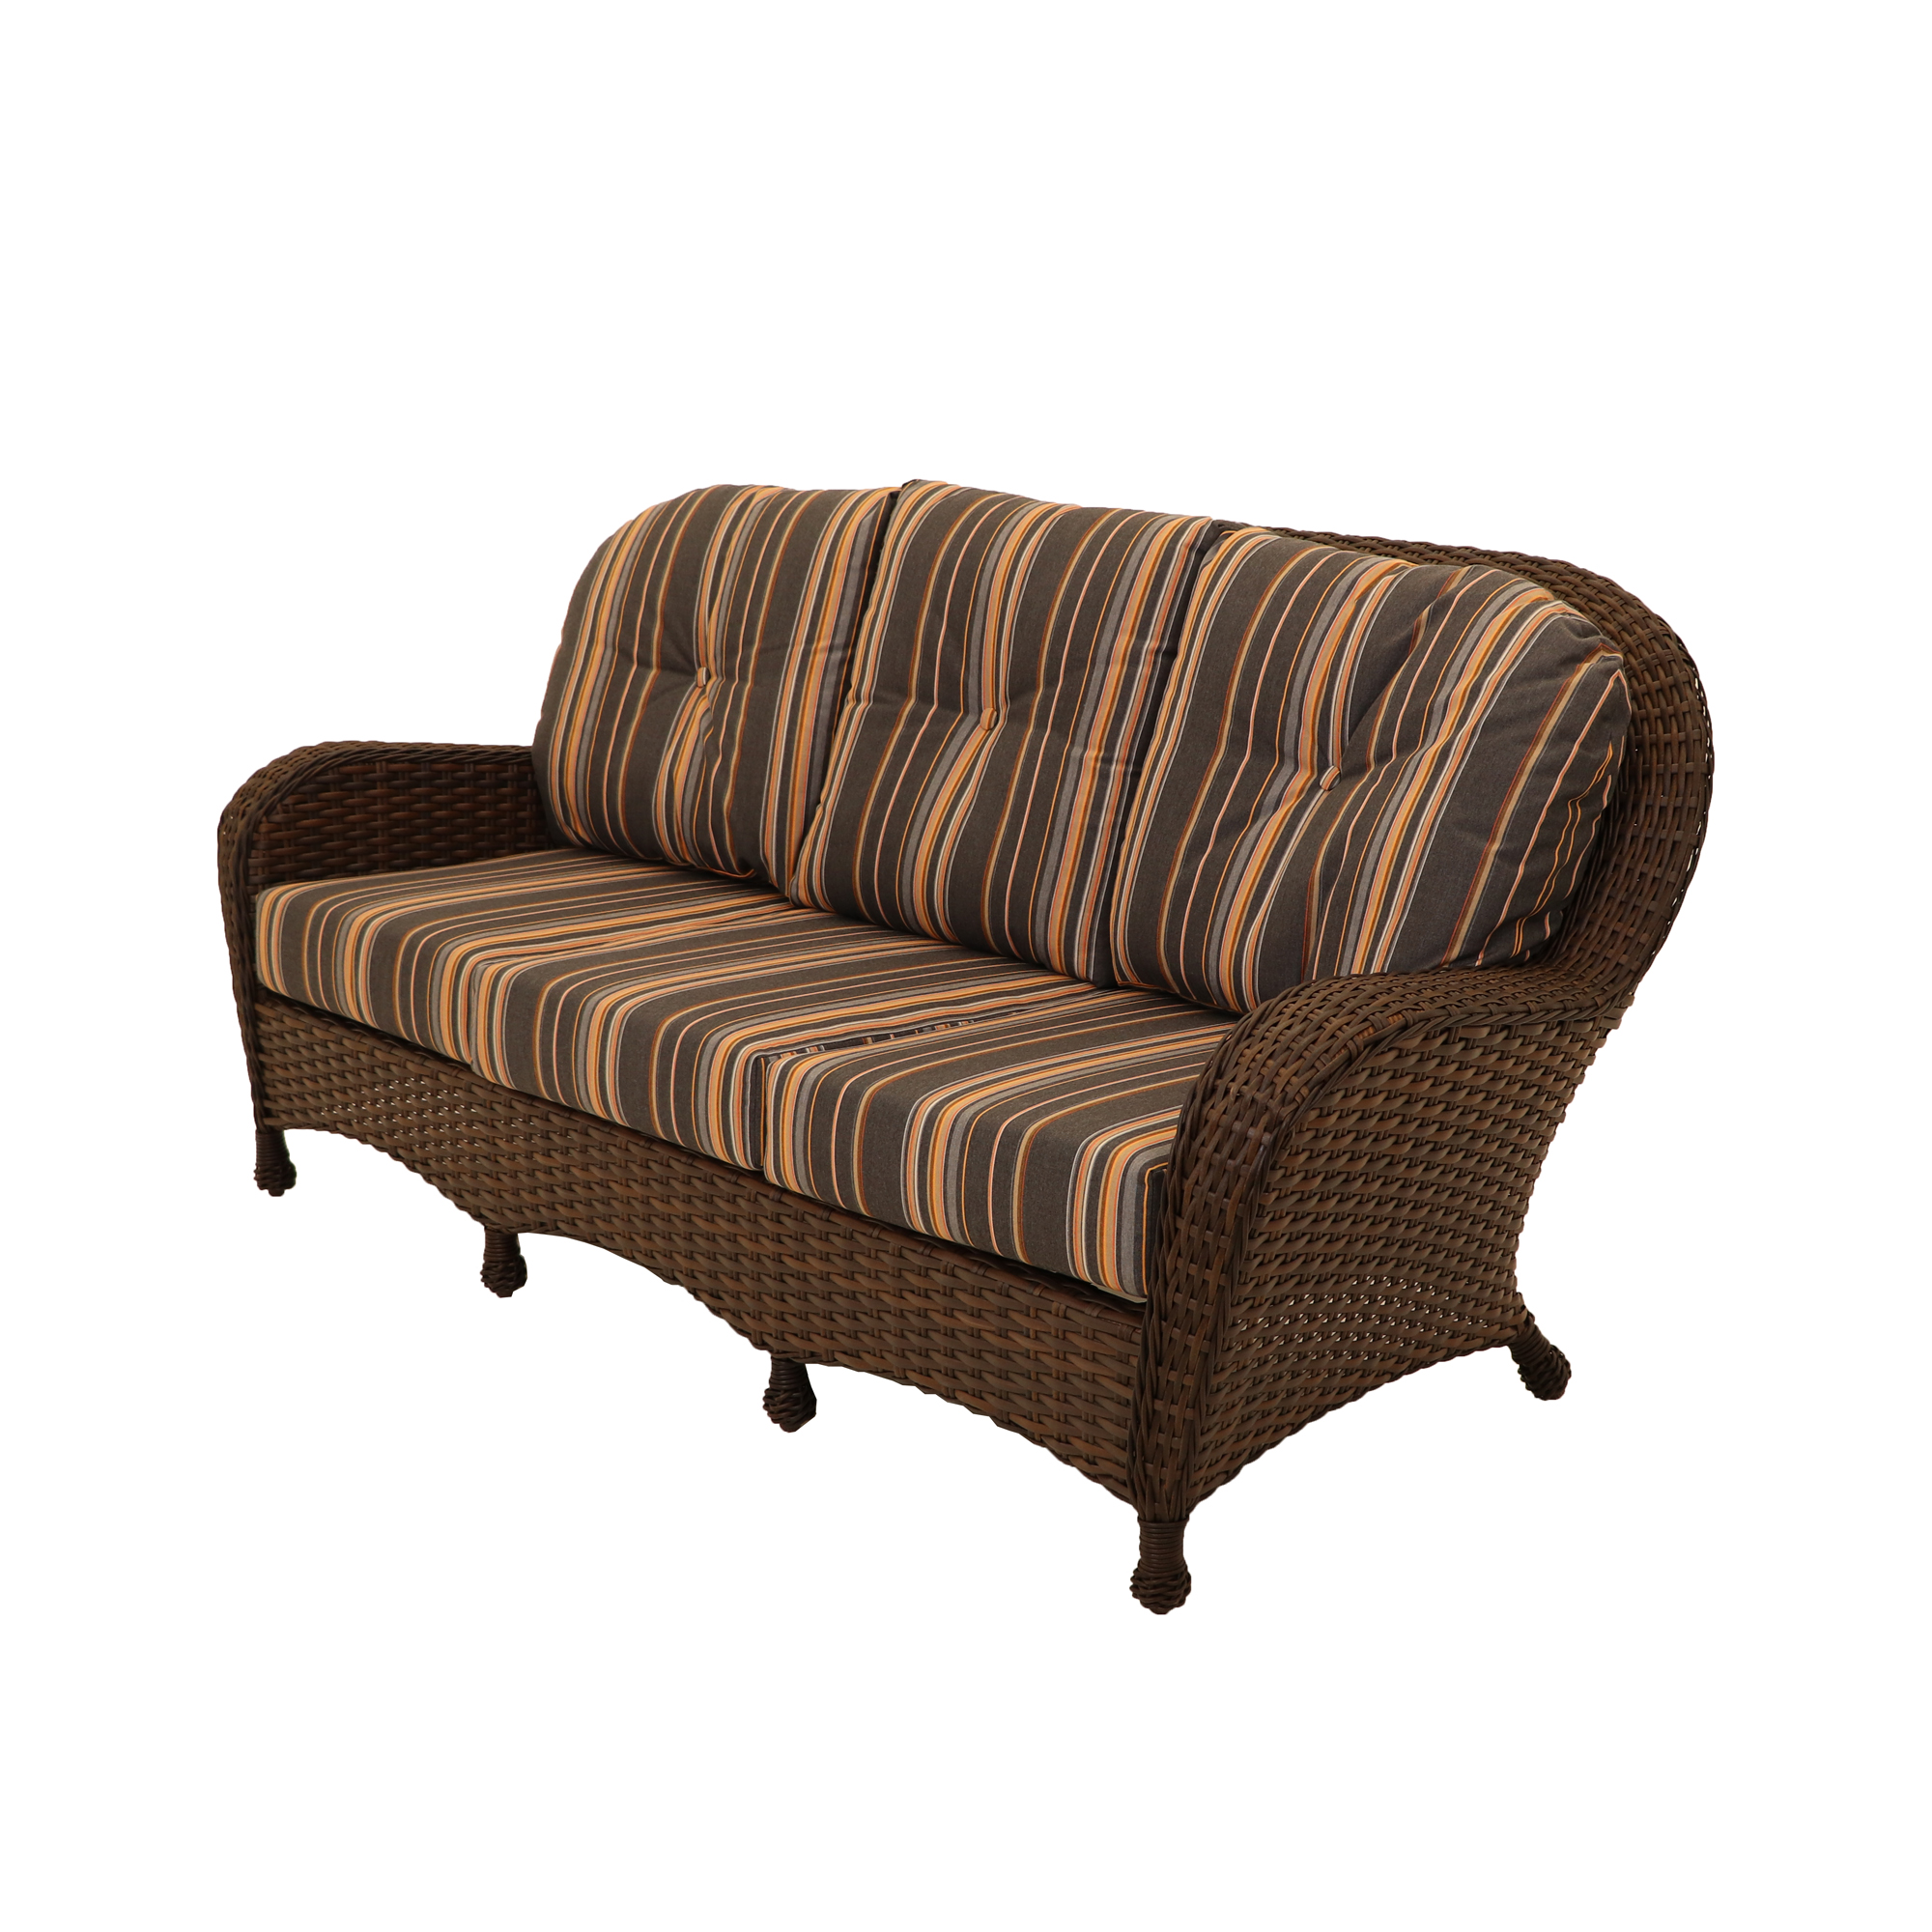 Havana Wicker Sofa Patio Furniture At Sun Country